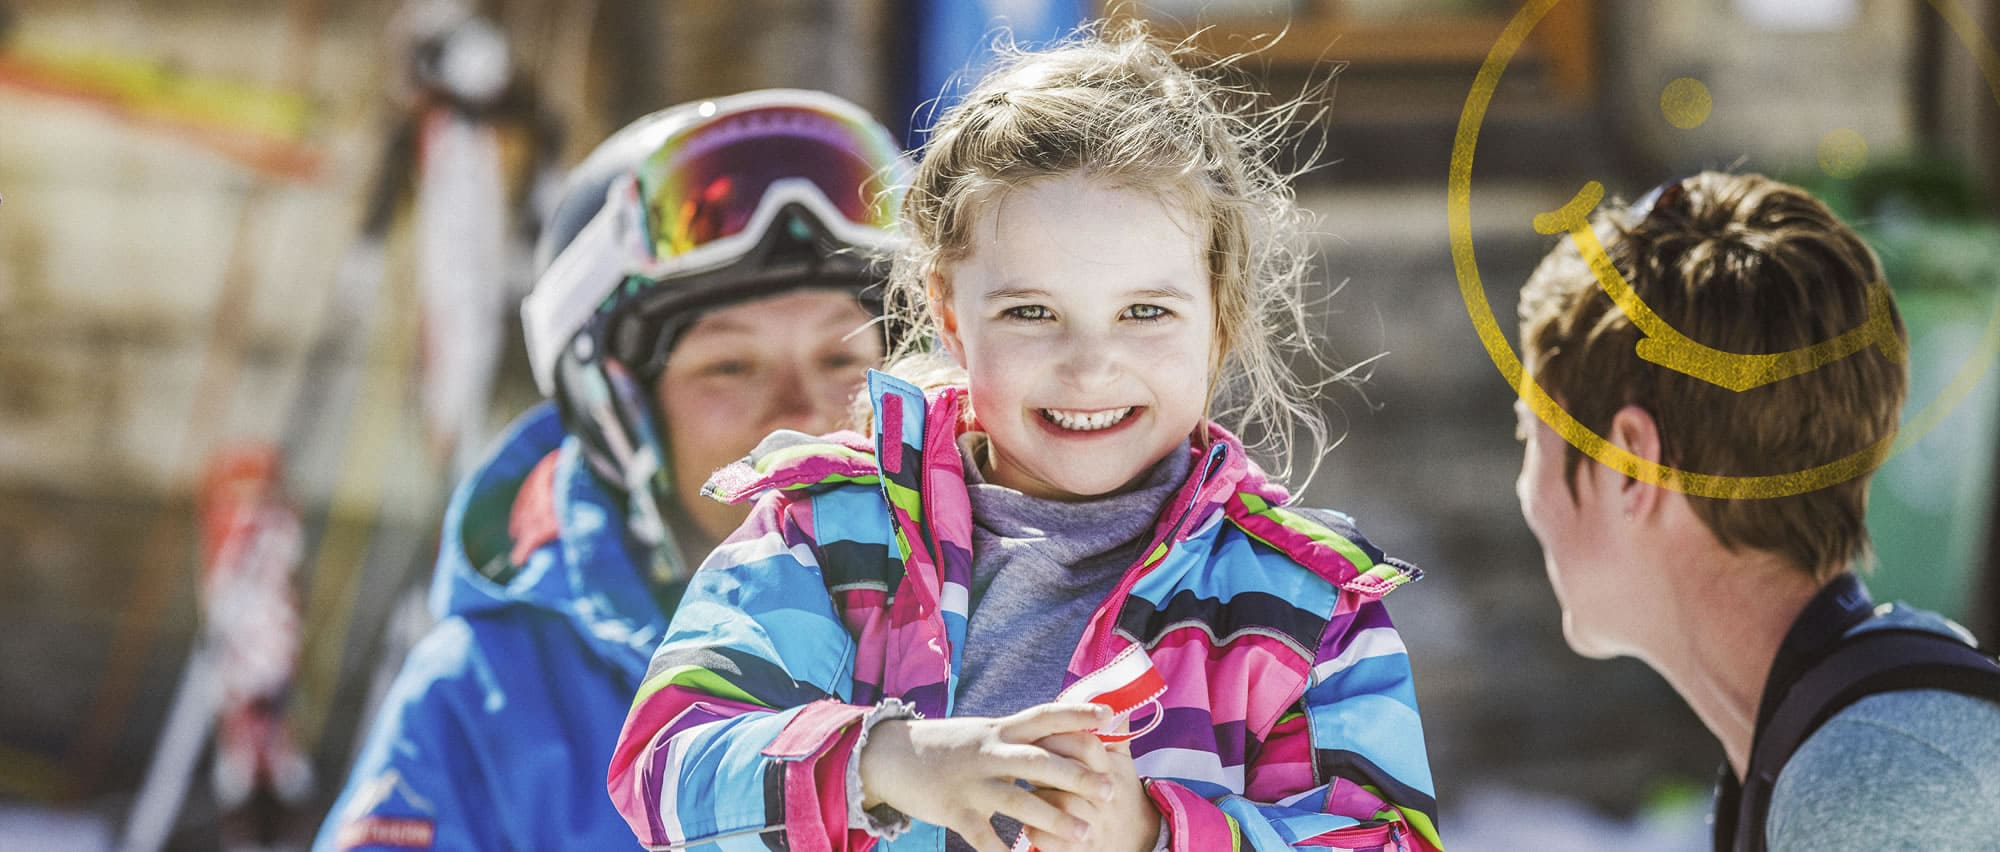 Children's skiing courses in Salzburger Land